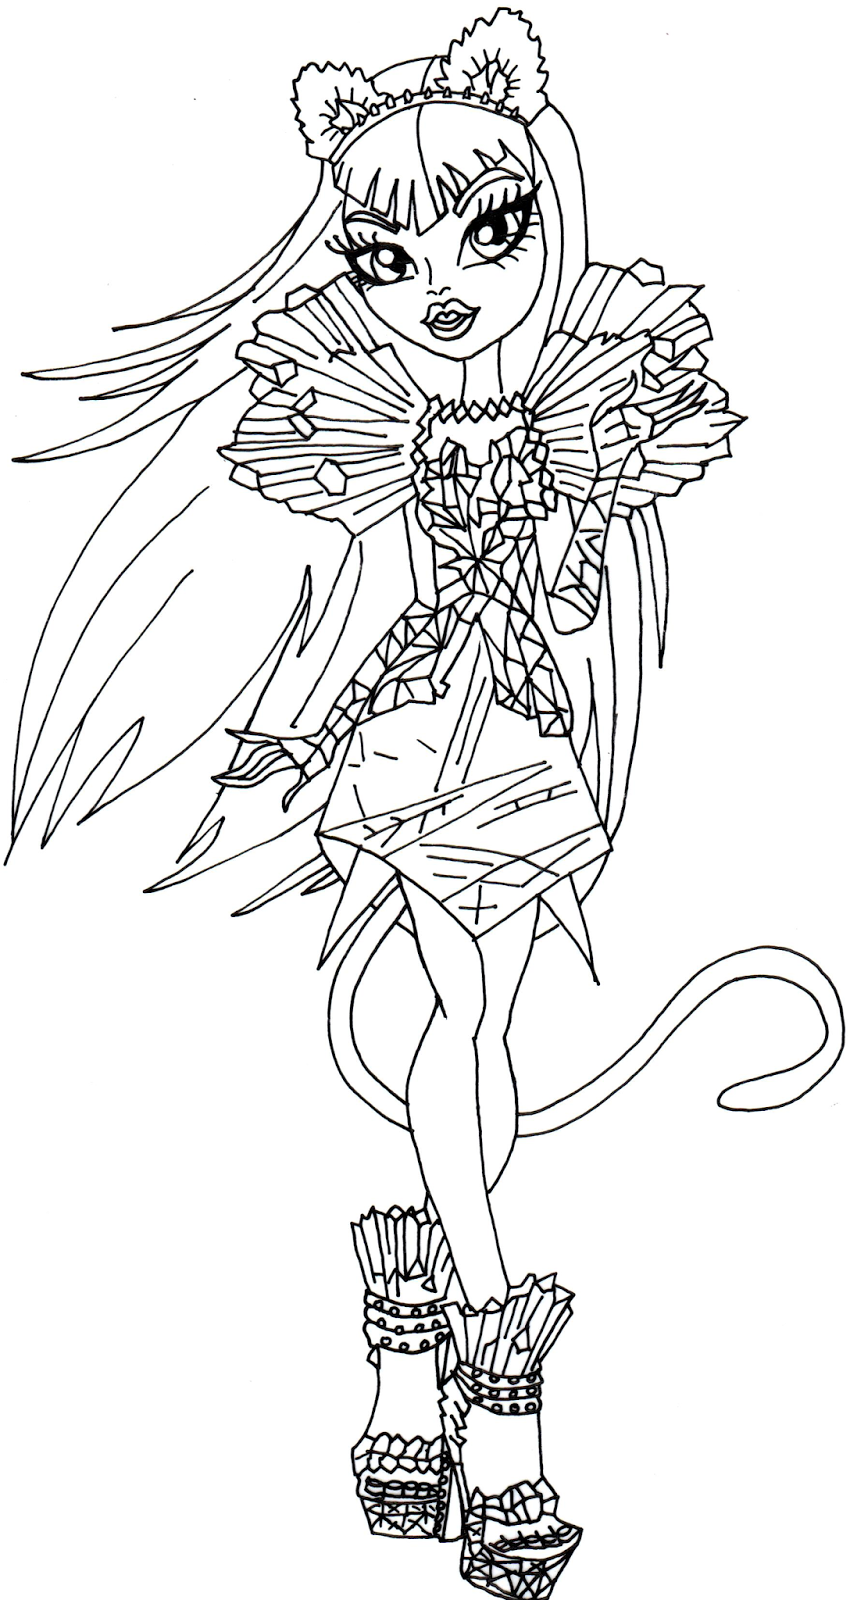 Free printable monster high coloring pages catty noir boo for Monster high printables coloring pages